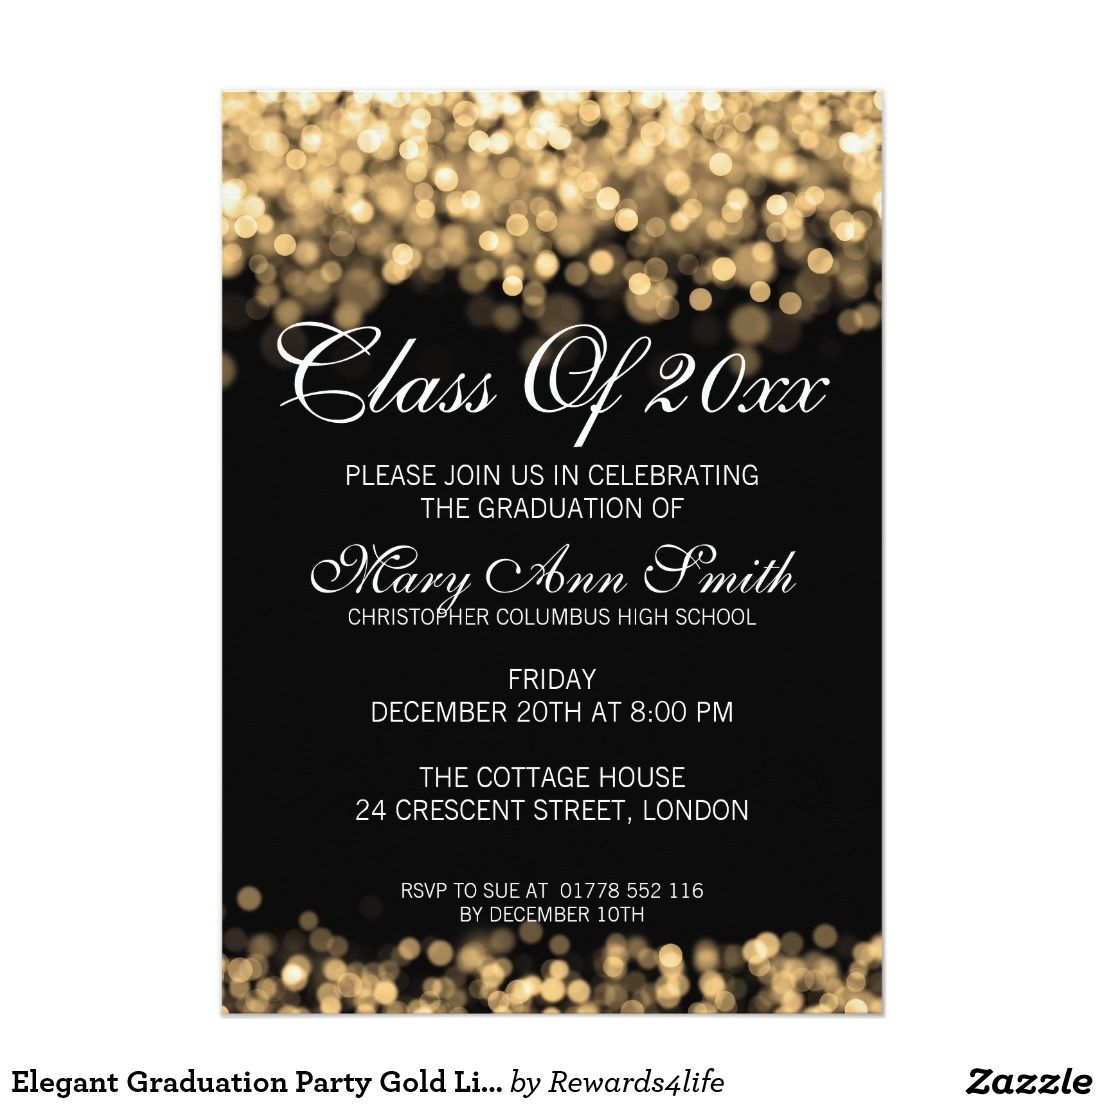 Create Your Own Invitation Zazzle Com In 2020 Elegant Christmas Party Birthday Surprise Party Surprise Birthday Party Invitations